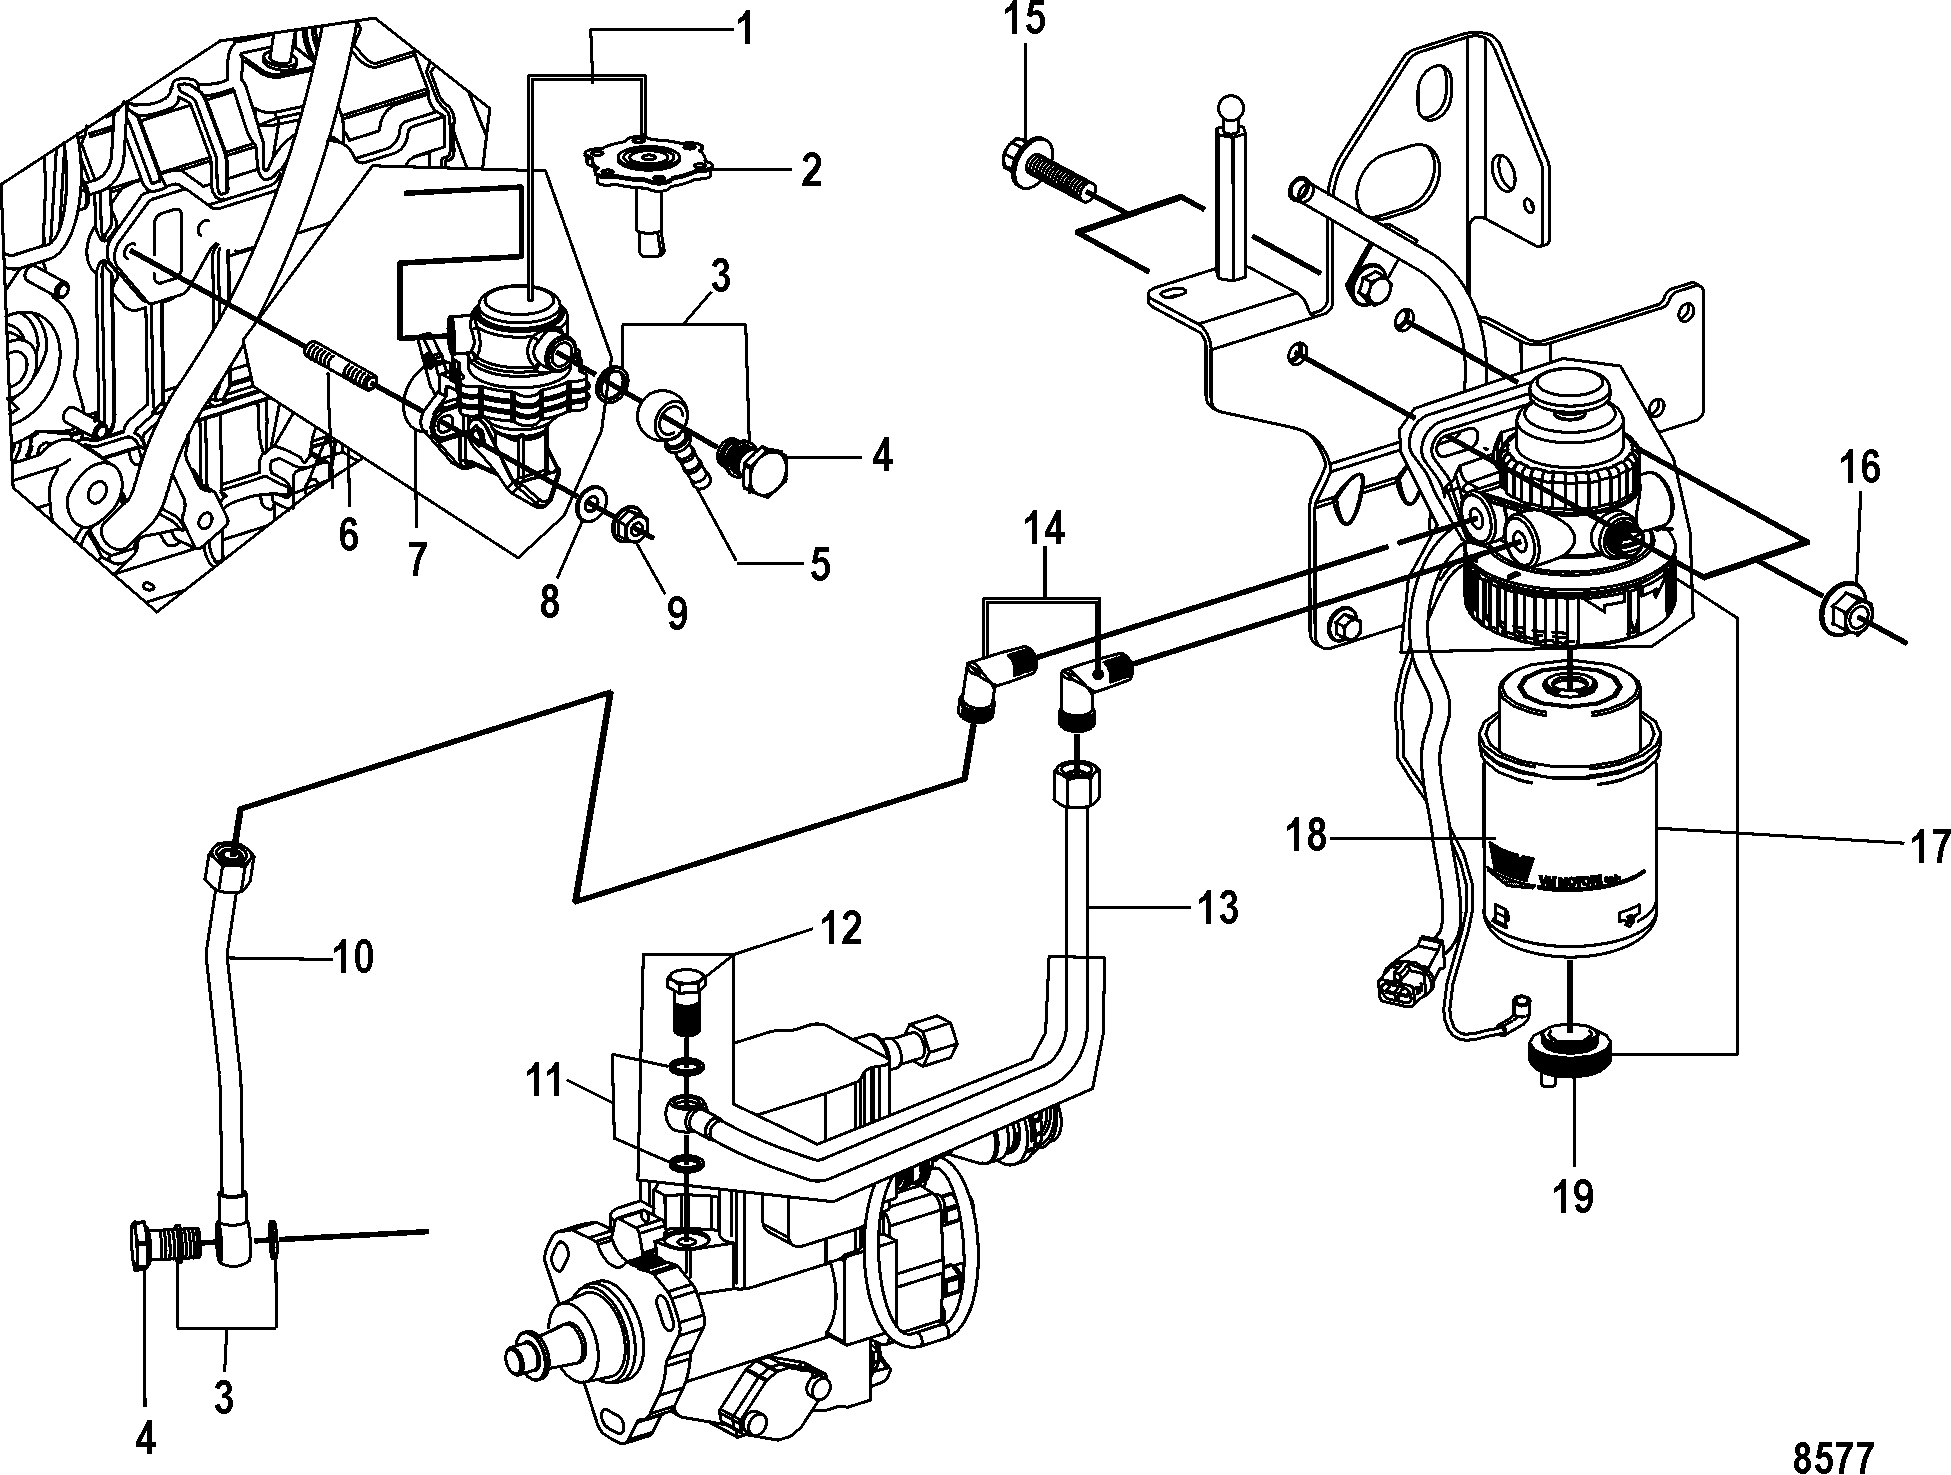 Serpentine Belt Diagram 2002 Dodge Grand Caravan V6 33 Liter Engine 02526 likewise Dodge Charger 3 5 Engine Cylinder 6 Location additionally T6537189 Serpentine belt diagram 1995 chevy 2500 likewise 2002 2009 Chevrolet Trailblazer L6 4 2l Serpentine Belt Diagram in addition 1999 06 Nissan Altima Sentra 1 8l Serpentine Belt Diagram. on serpentine belt diagrams chevy 3 1